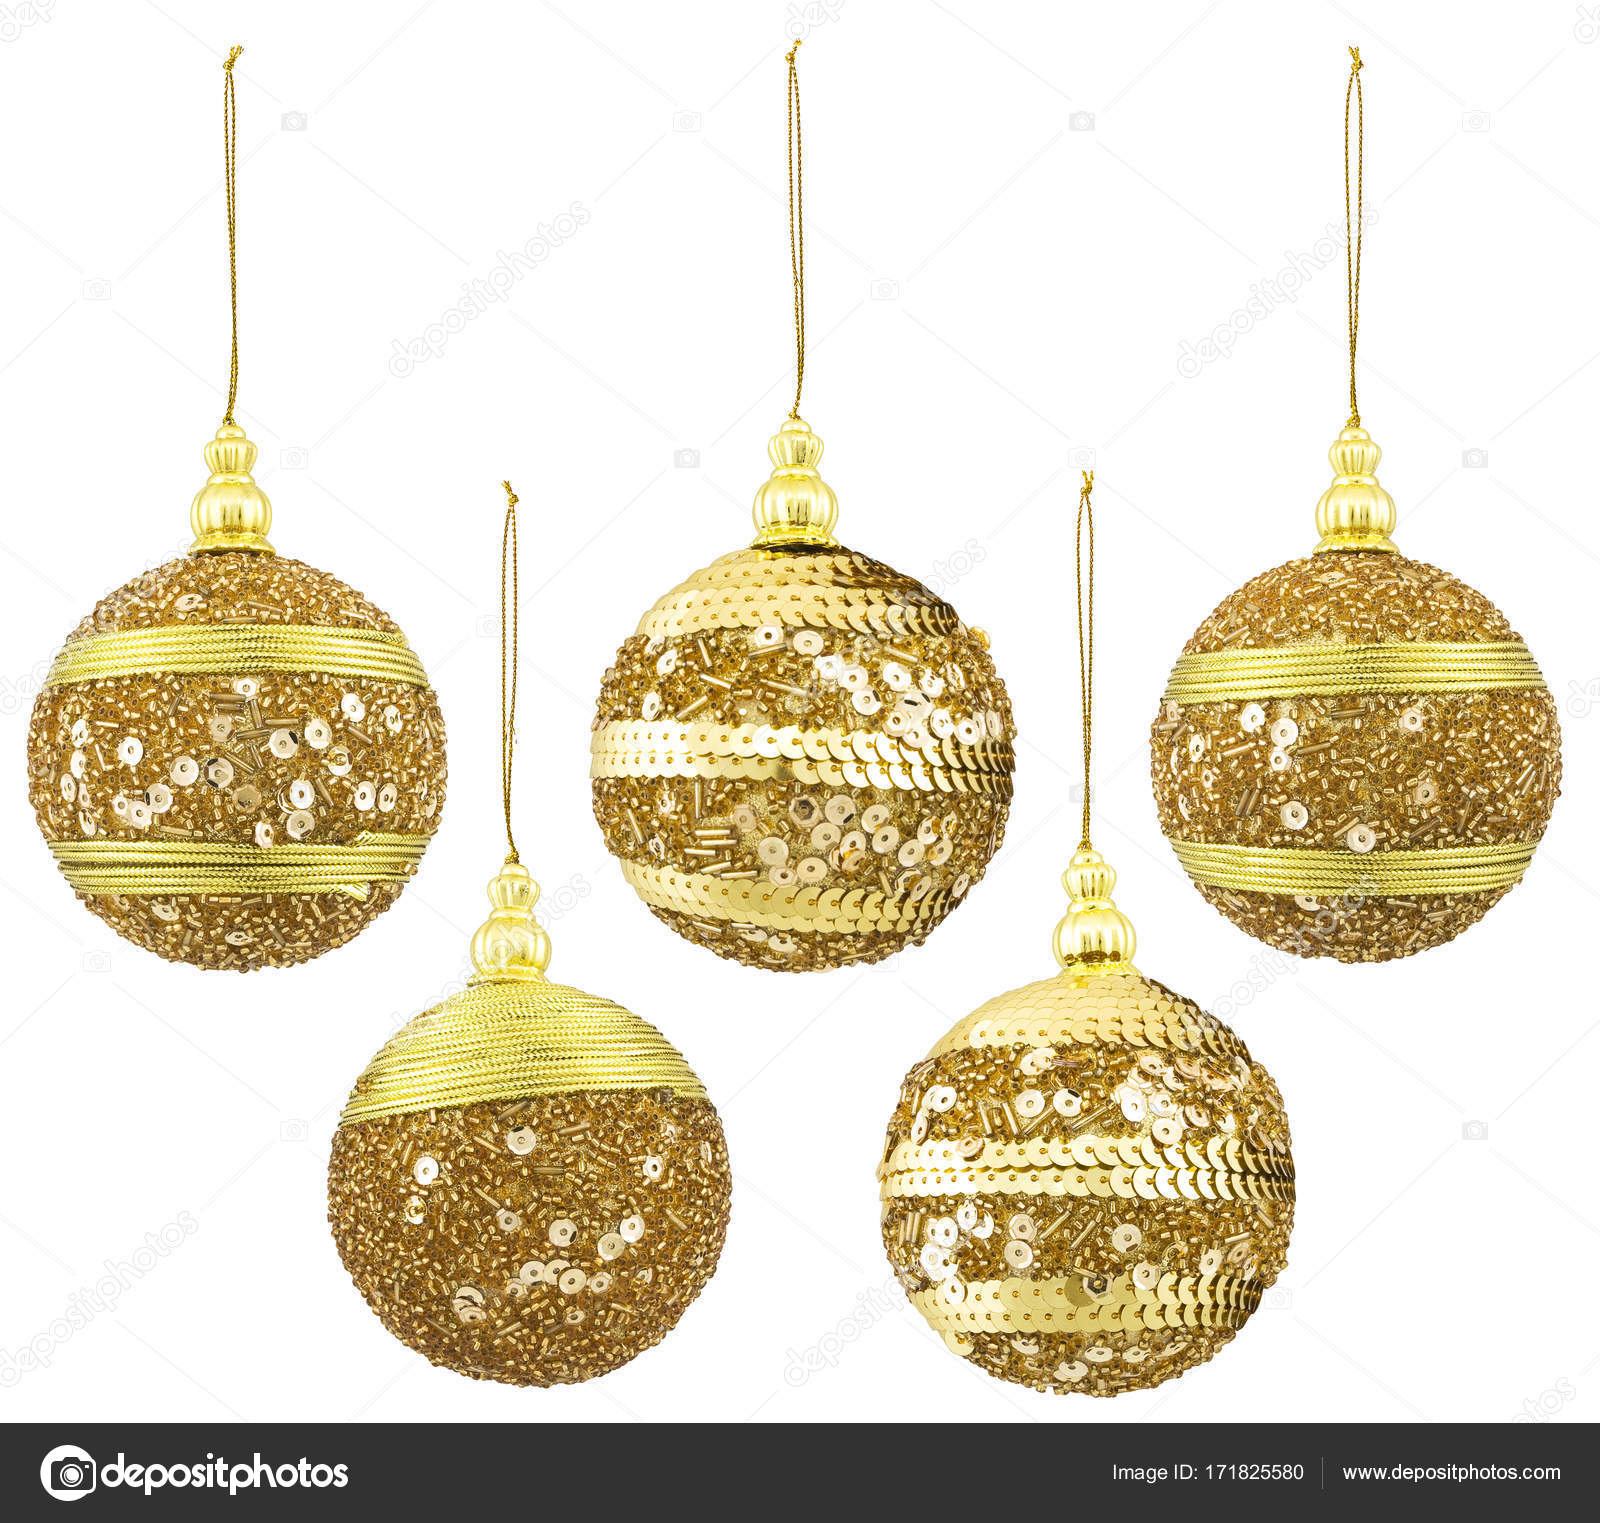 Christmas Balls Decoration New Year Hanging Ball Isolated Gold